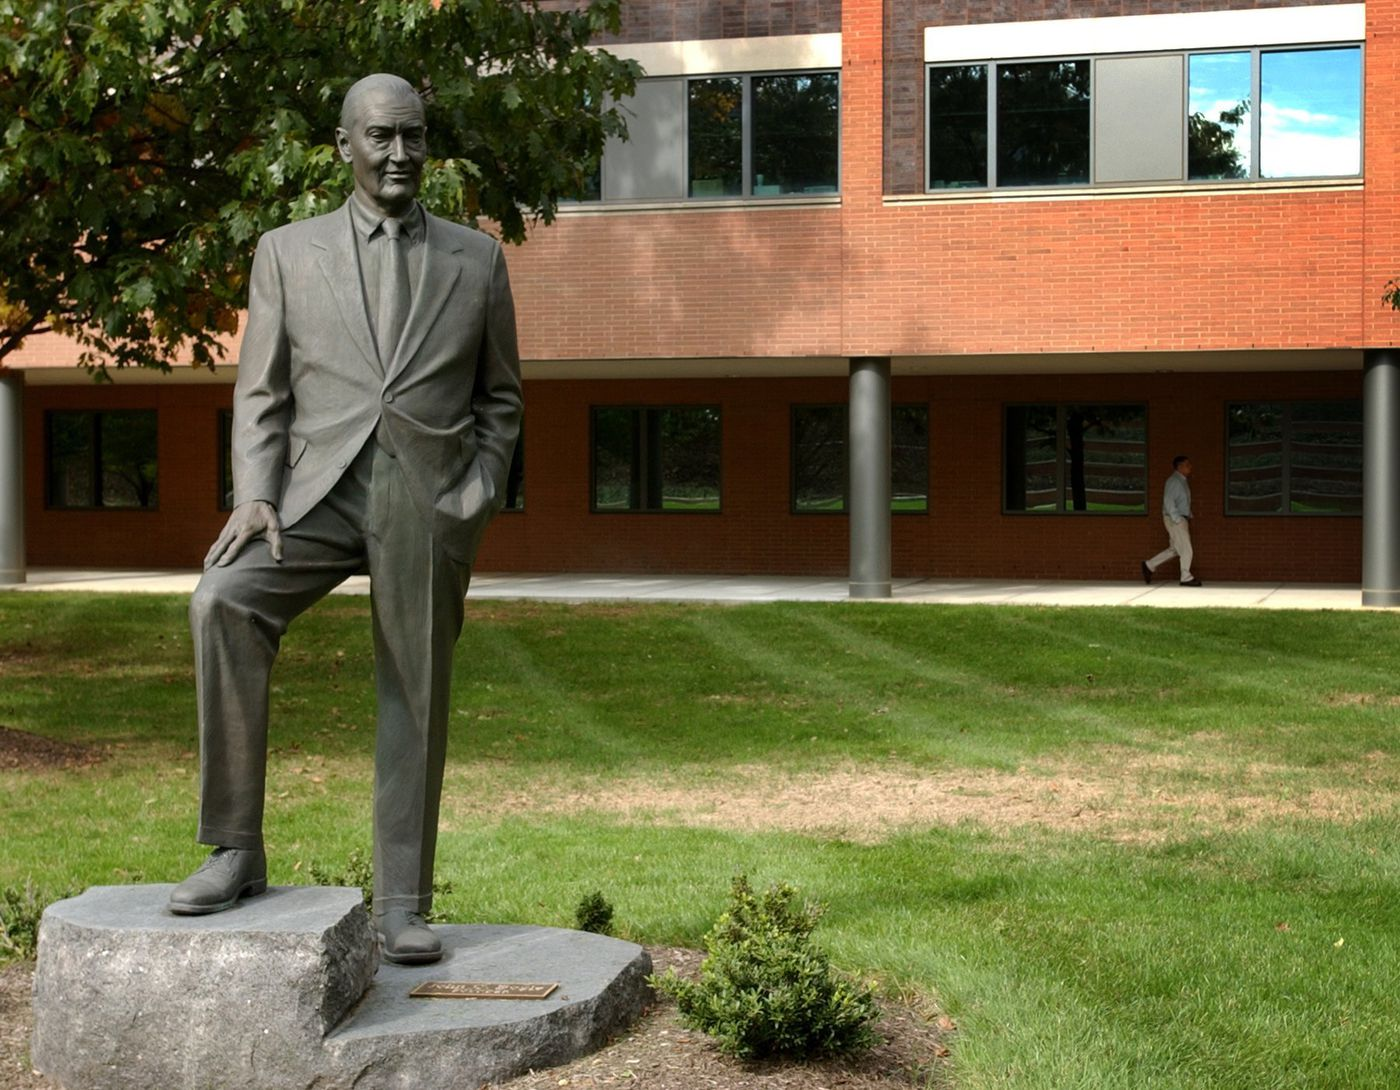 The life size statue of John Bogle, the founder of the Vanguard Group, is shown Oct. 20, 2005, at the headquarters in Malvern, Pennsylvania. Bogle, then 76, had written his fifth book, The Battle for the Soul of Capitalism.